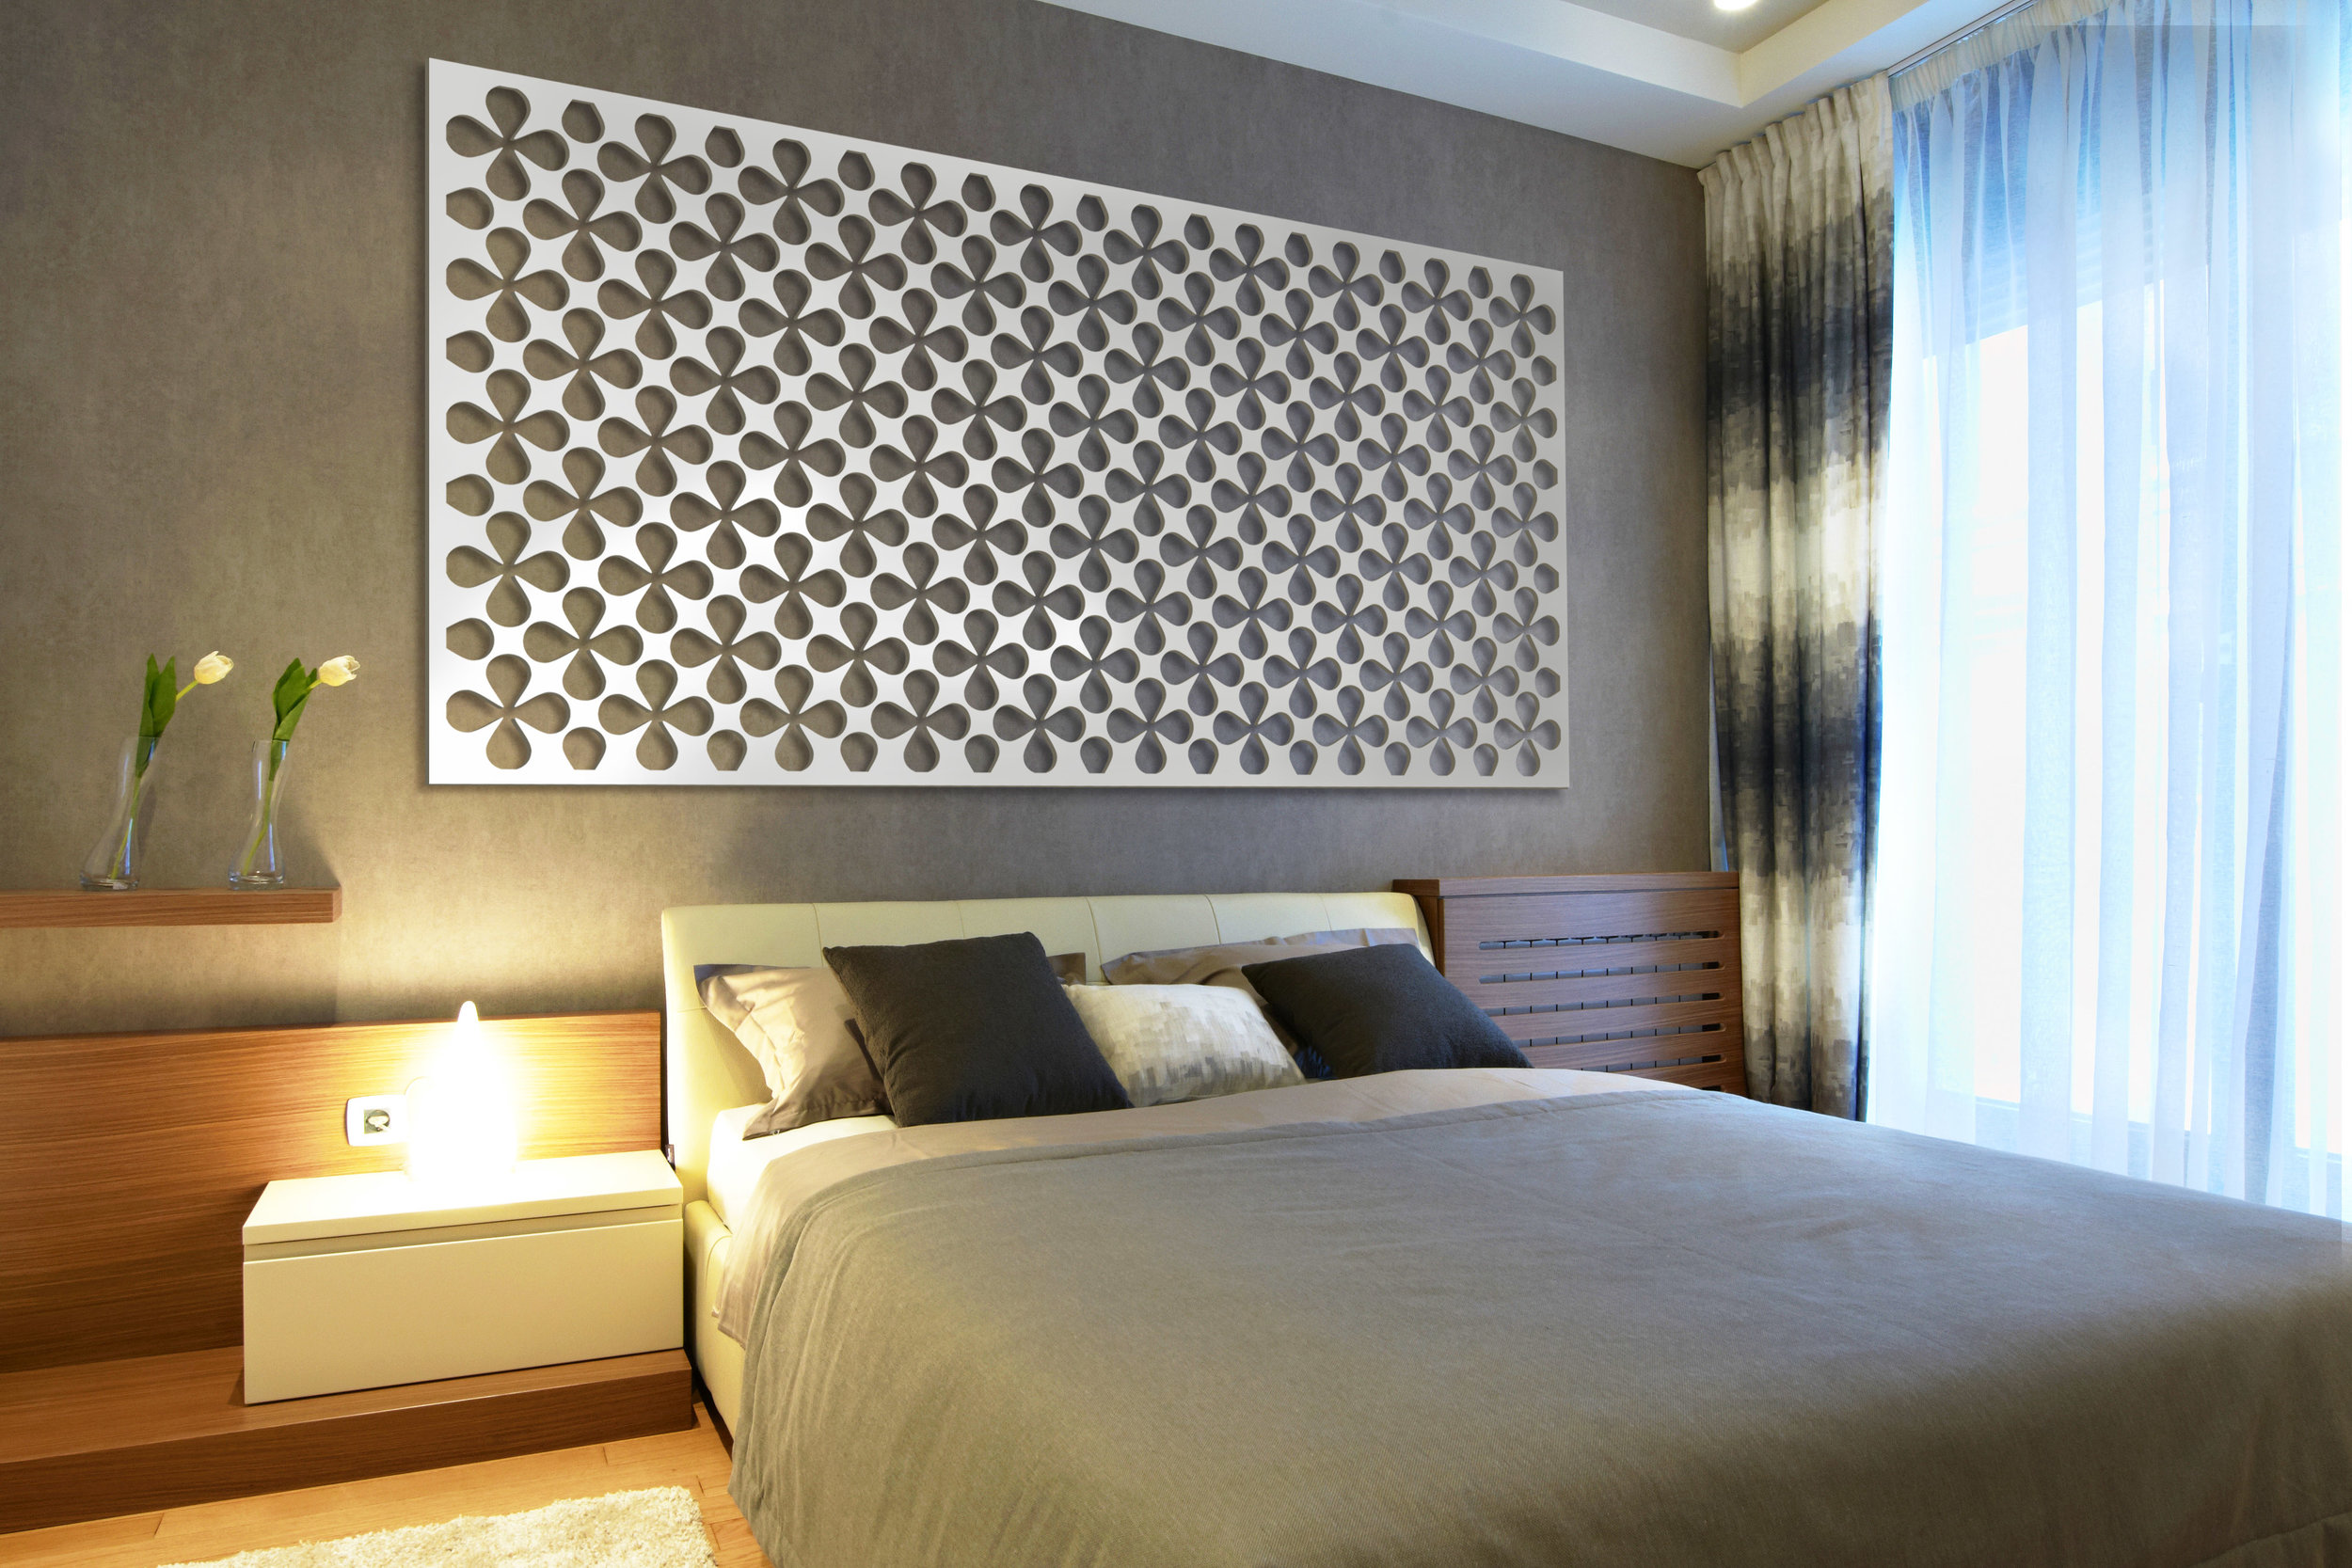 Installation Rendering C   Atomic decorative hotel wall panel - painted